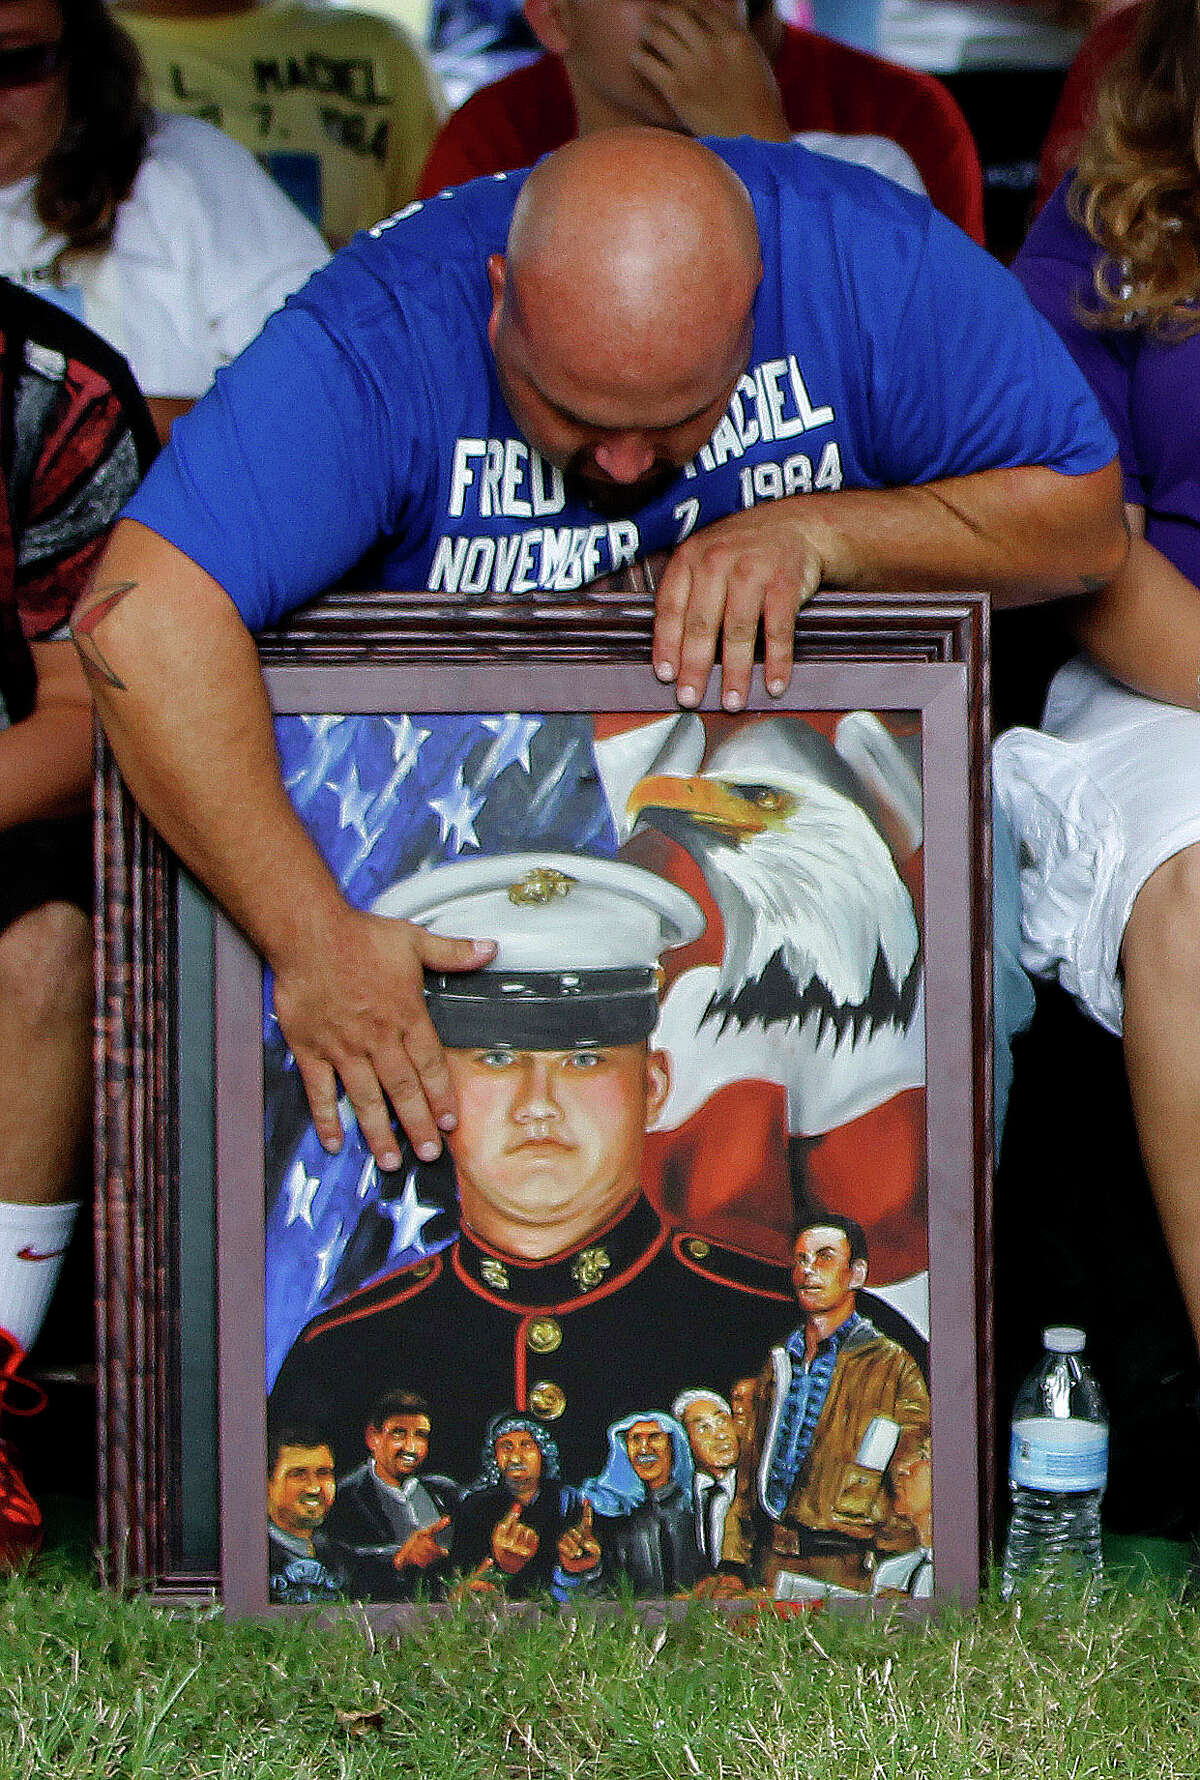 Lee Nelson, cousin of Fred Maciel, who died in Iraq, hugs a Ken Pridgeon Sr. painting of him on Saturday.